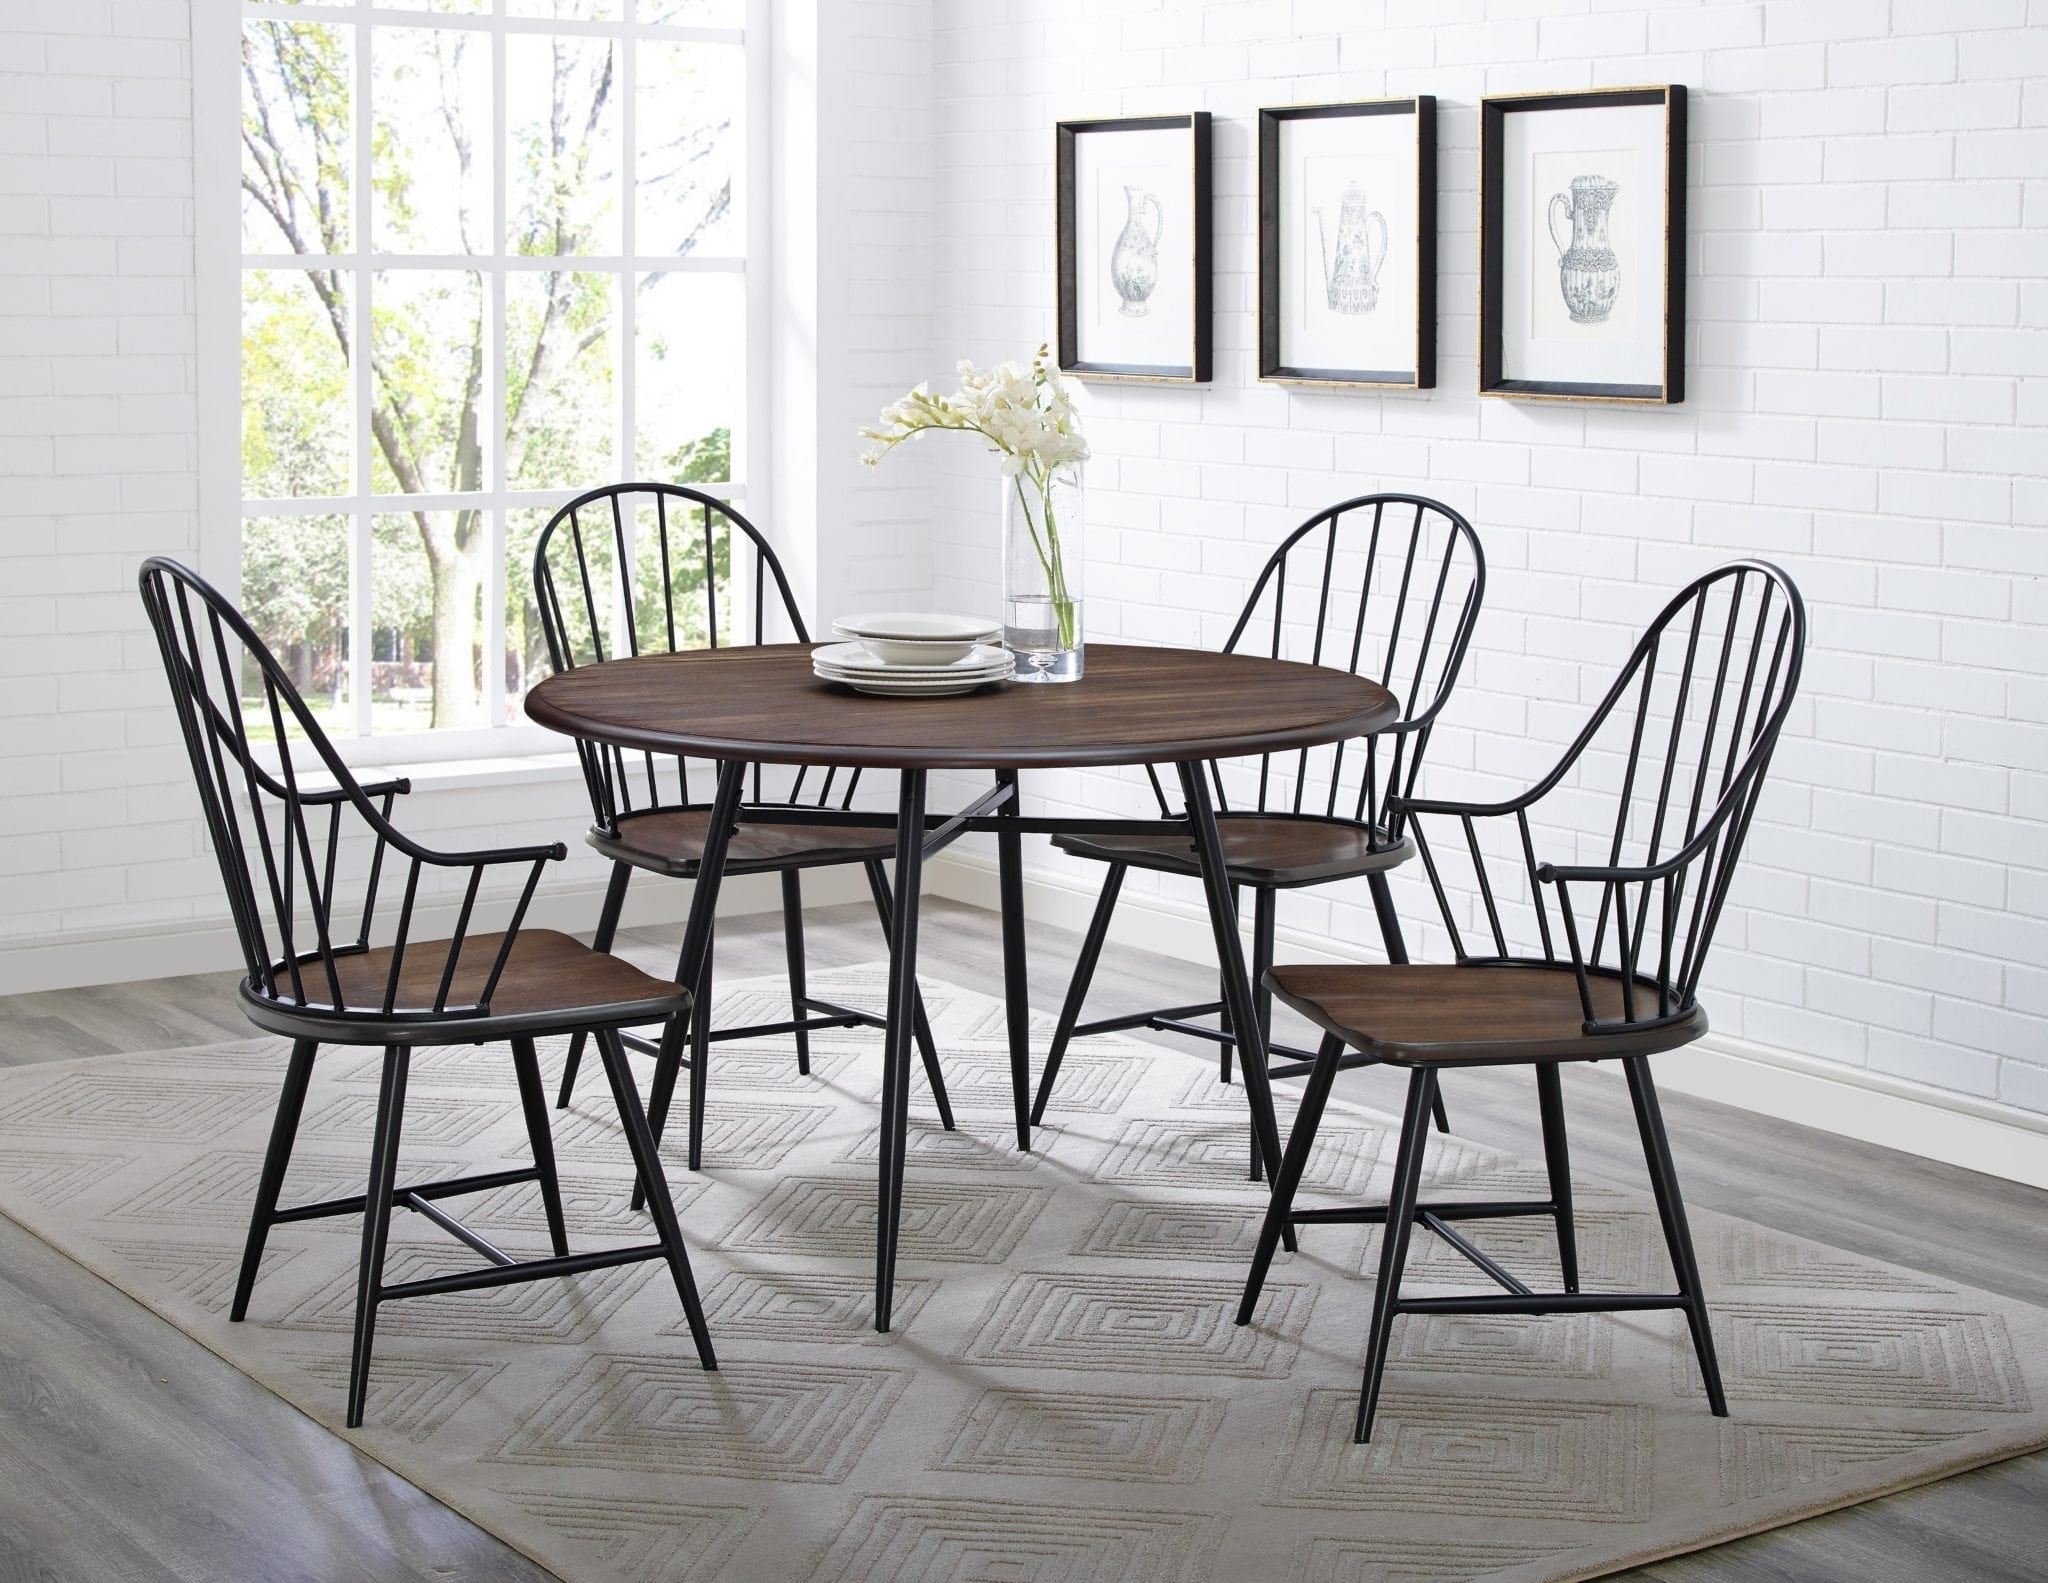 Davis Home Furniture – Asheville, Canton & Waynesville, Nc In Jaxon 5 Piece Extension Round Dining Sets With Wood Chairs (View 2 of 25)